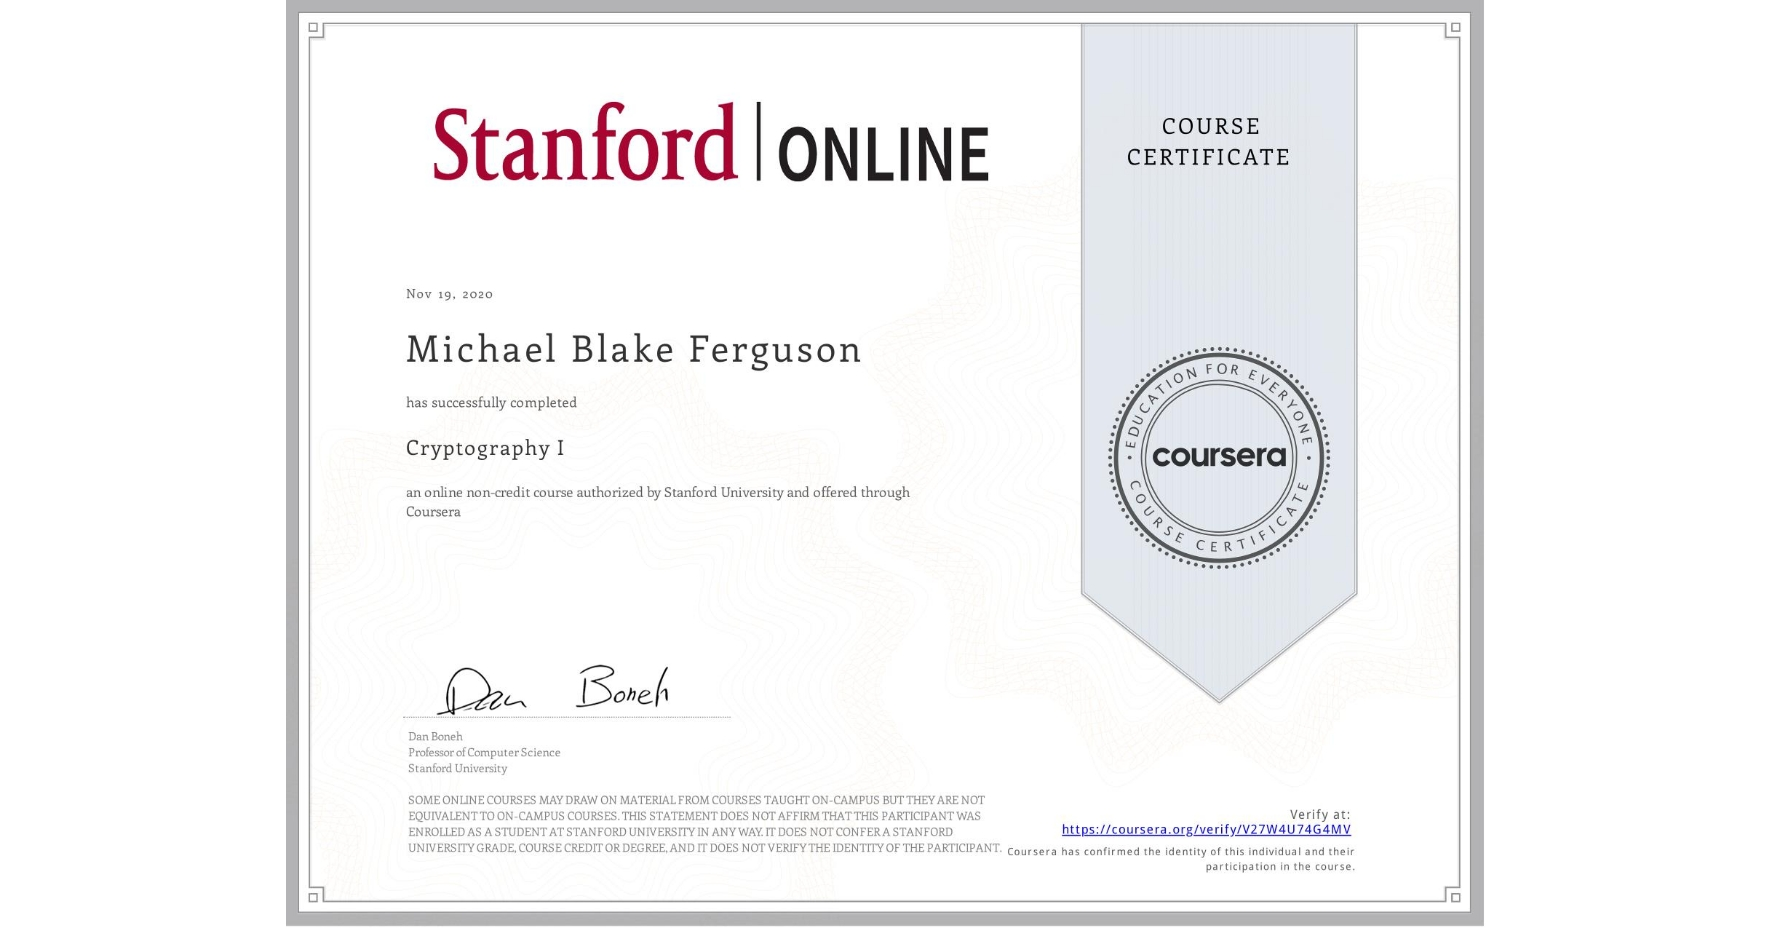 View certificate for Michael Blake Ferguson, Cryptography I, an online non-credit course authorized by Stanford University and offered through Coursera